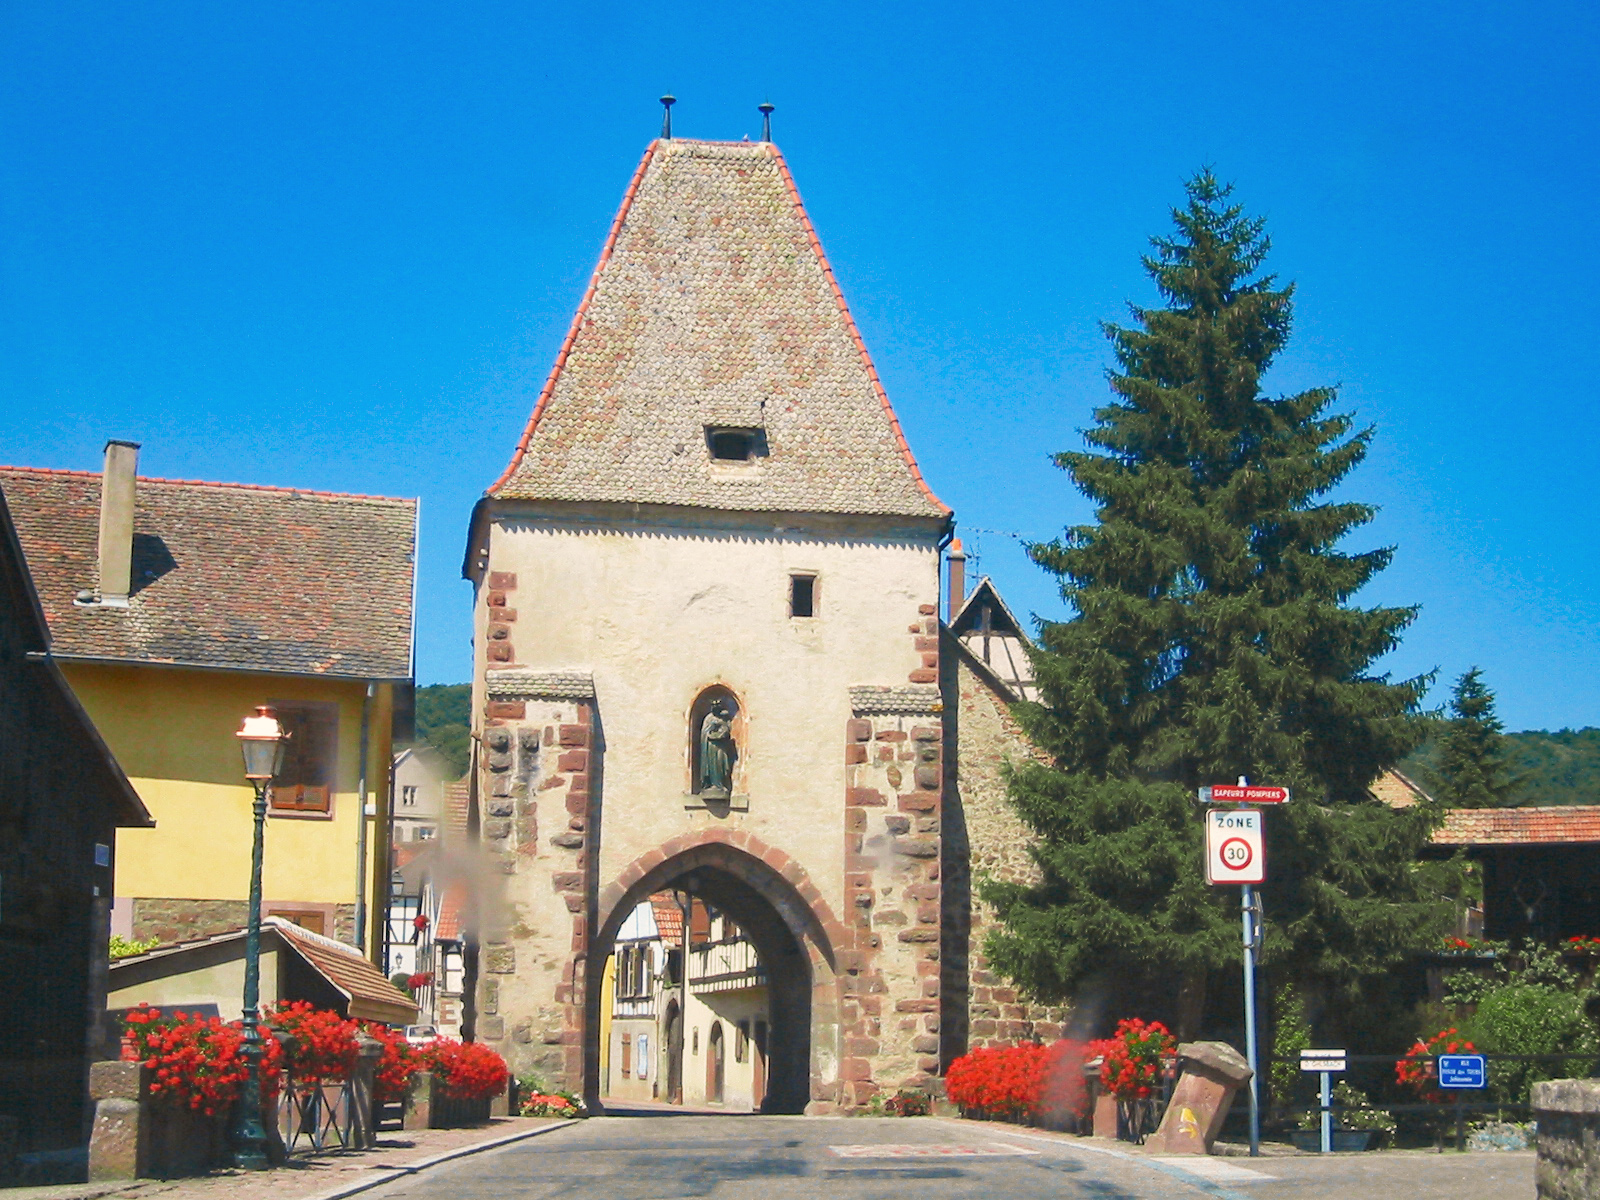 Fortified City Gates of Alsace - Tour Basse, Bœrsch © David Pursehouse - licence [CC BY 2.0] from Wikimedia Commons